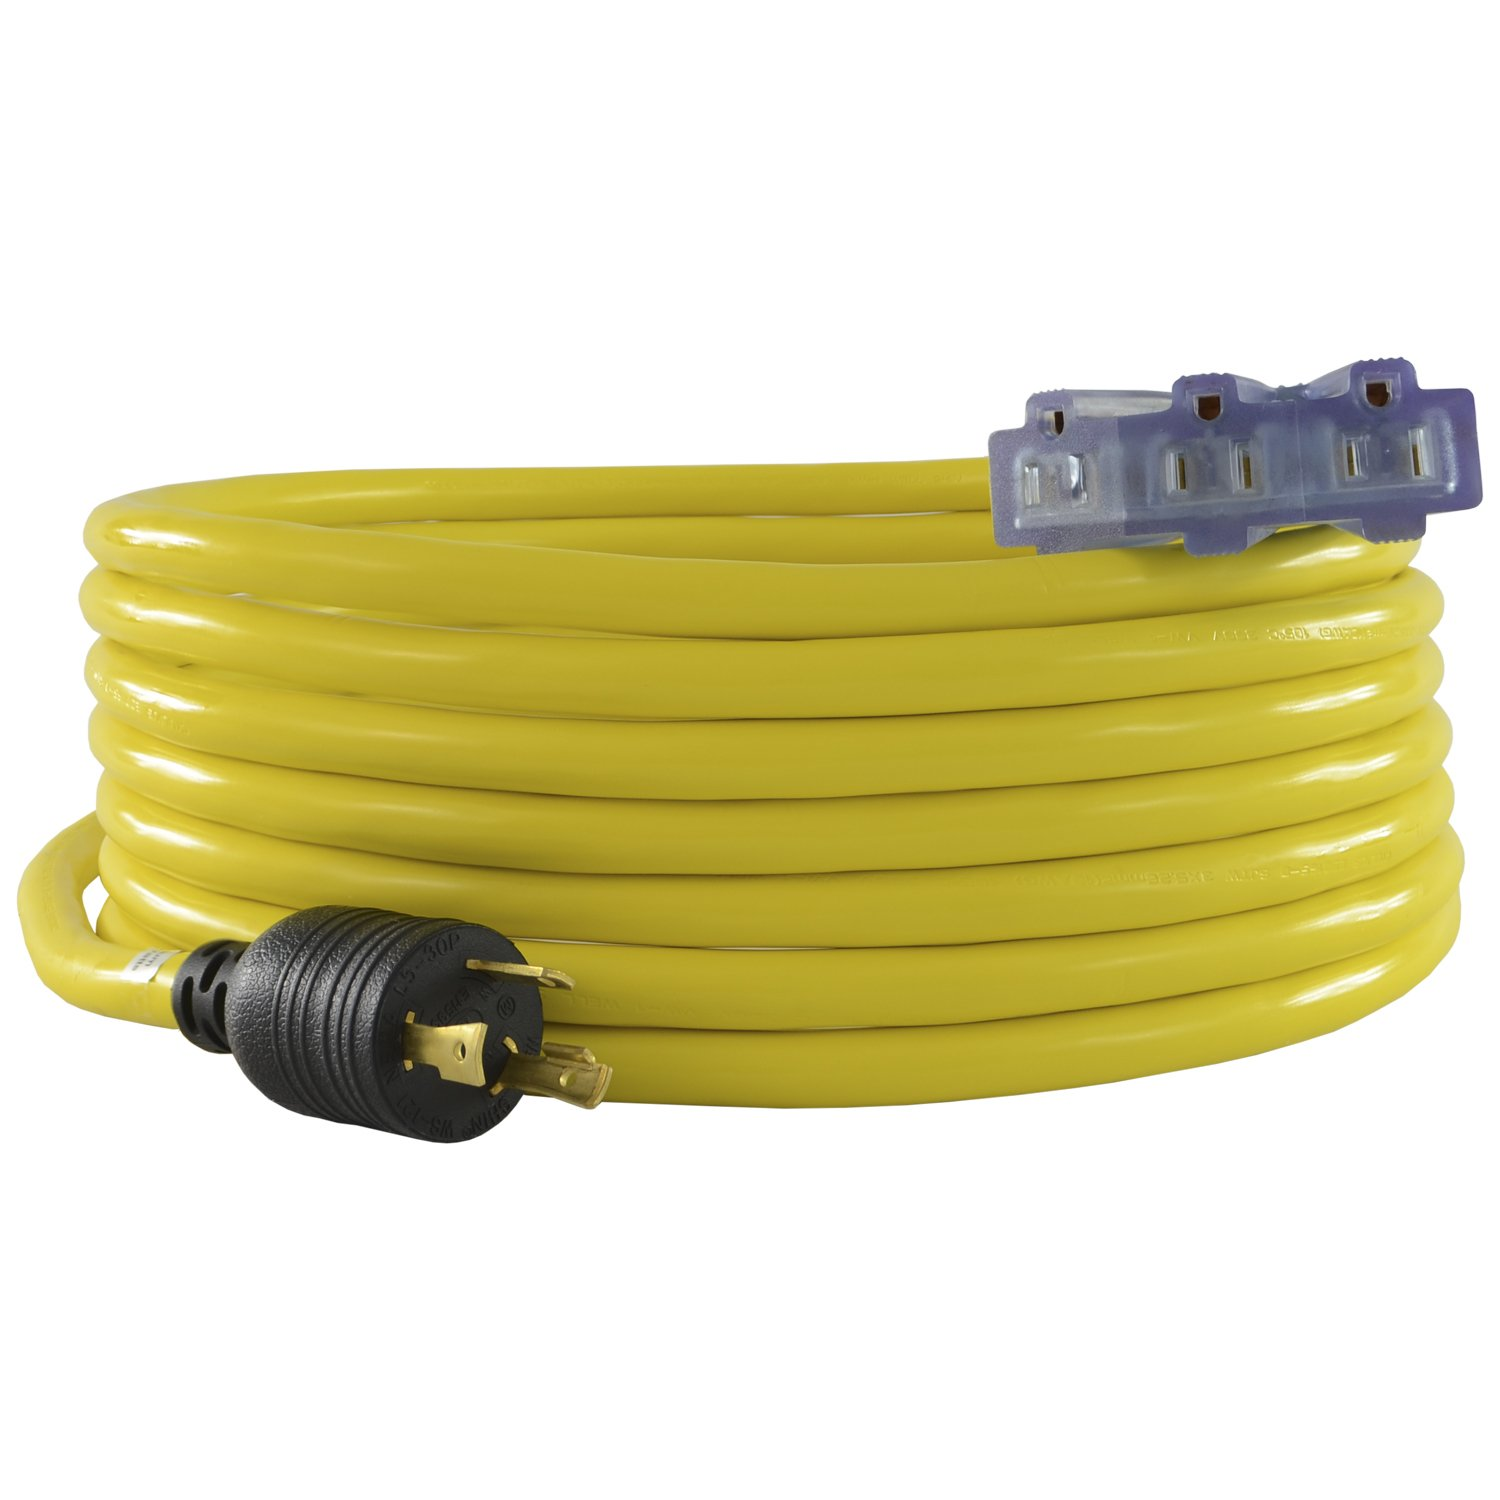 Conntek 20311-025 25-Feet 10/3 30-Amp 125-volt L5-30P Locking Plug to Tri-outlets with Light Indicator